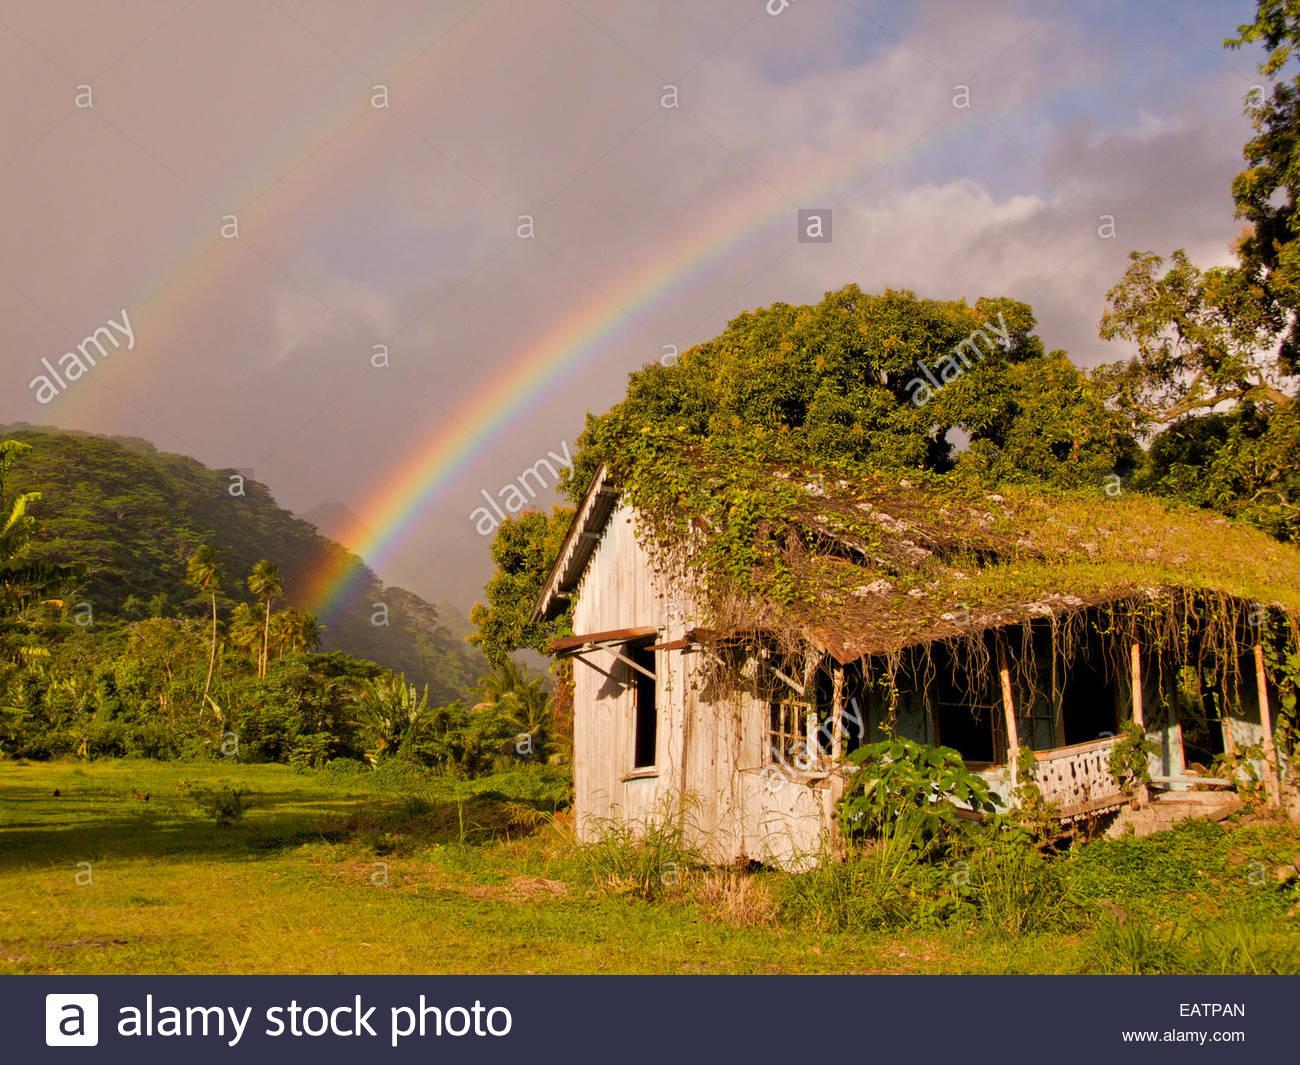 A double rainbow appears over an abandoned house in rural Tahiti. - Stock Image